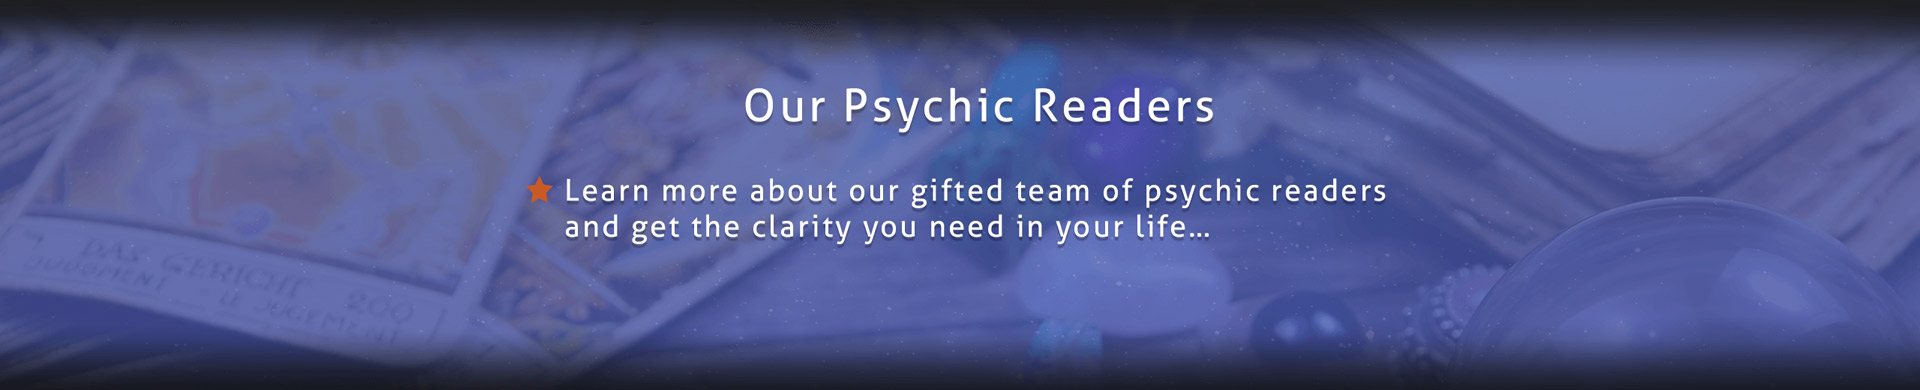 Our Psychic Readers Night star